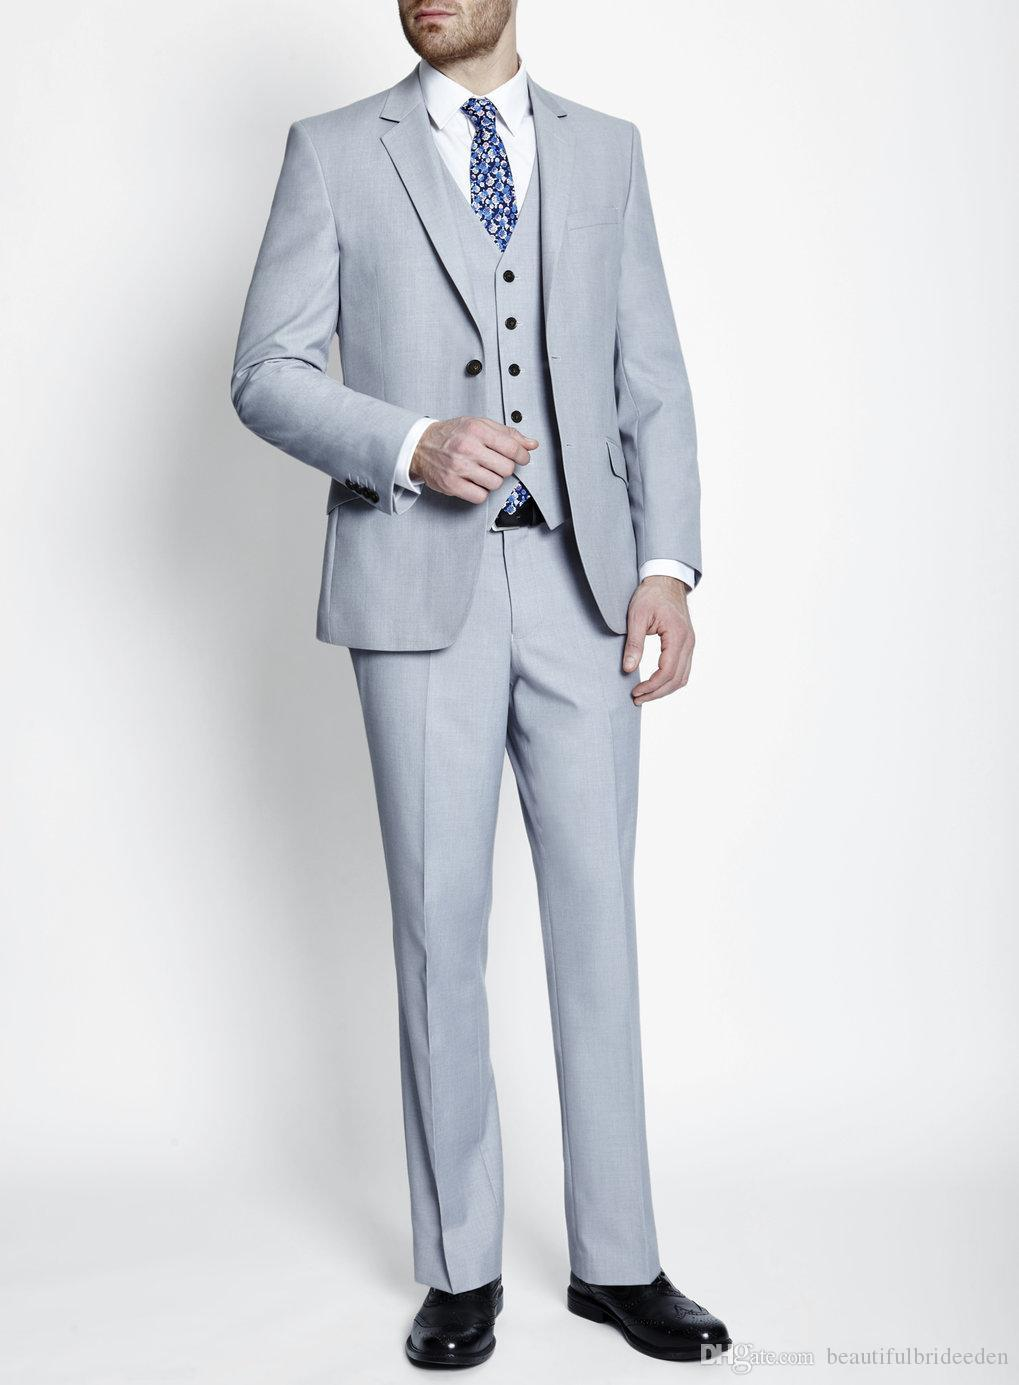 Inventive High Quality White Mens Suits Groom Tuxedos Groomsmen Wedding Party Dinner Best Man Suits W:40 Products Are Sold Without Limitations jacket+pants+bow Tie